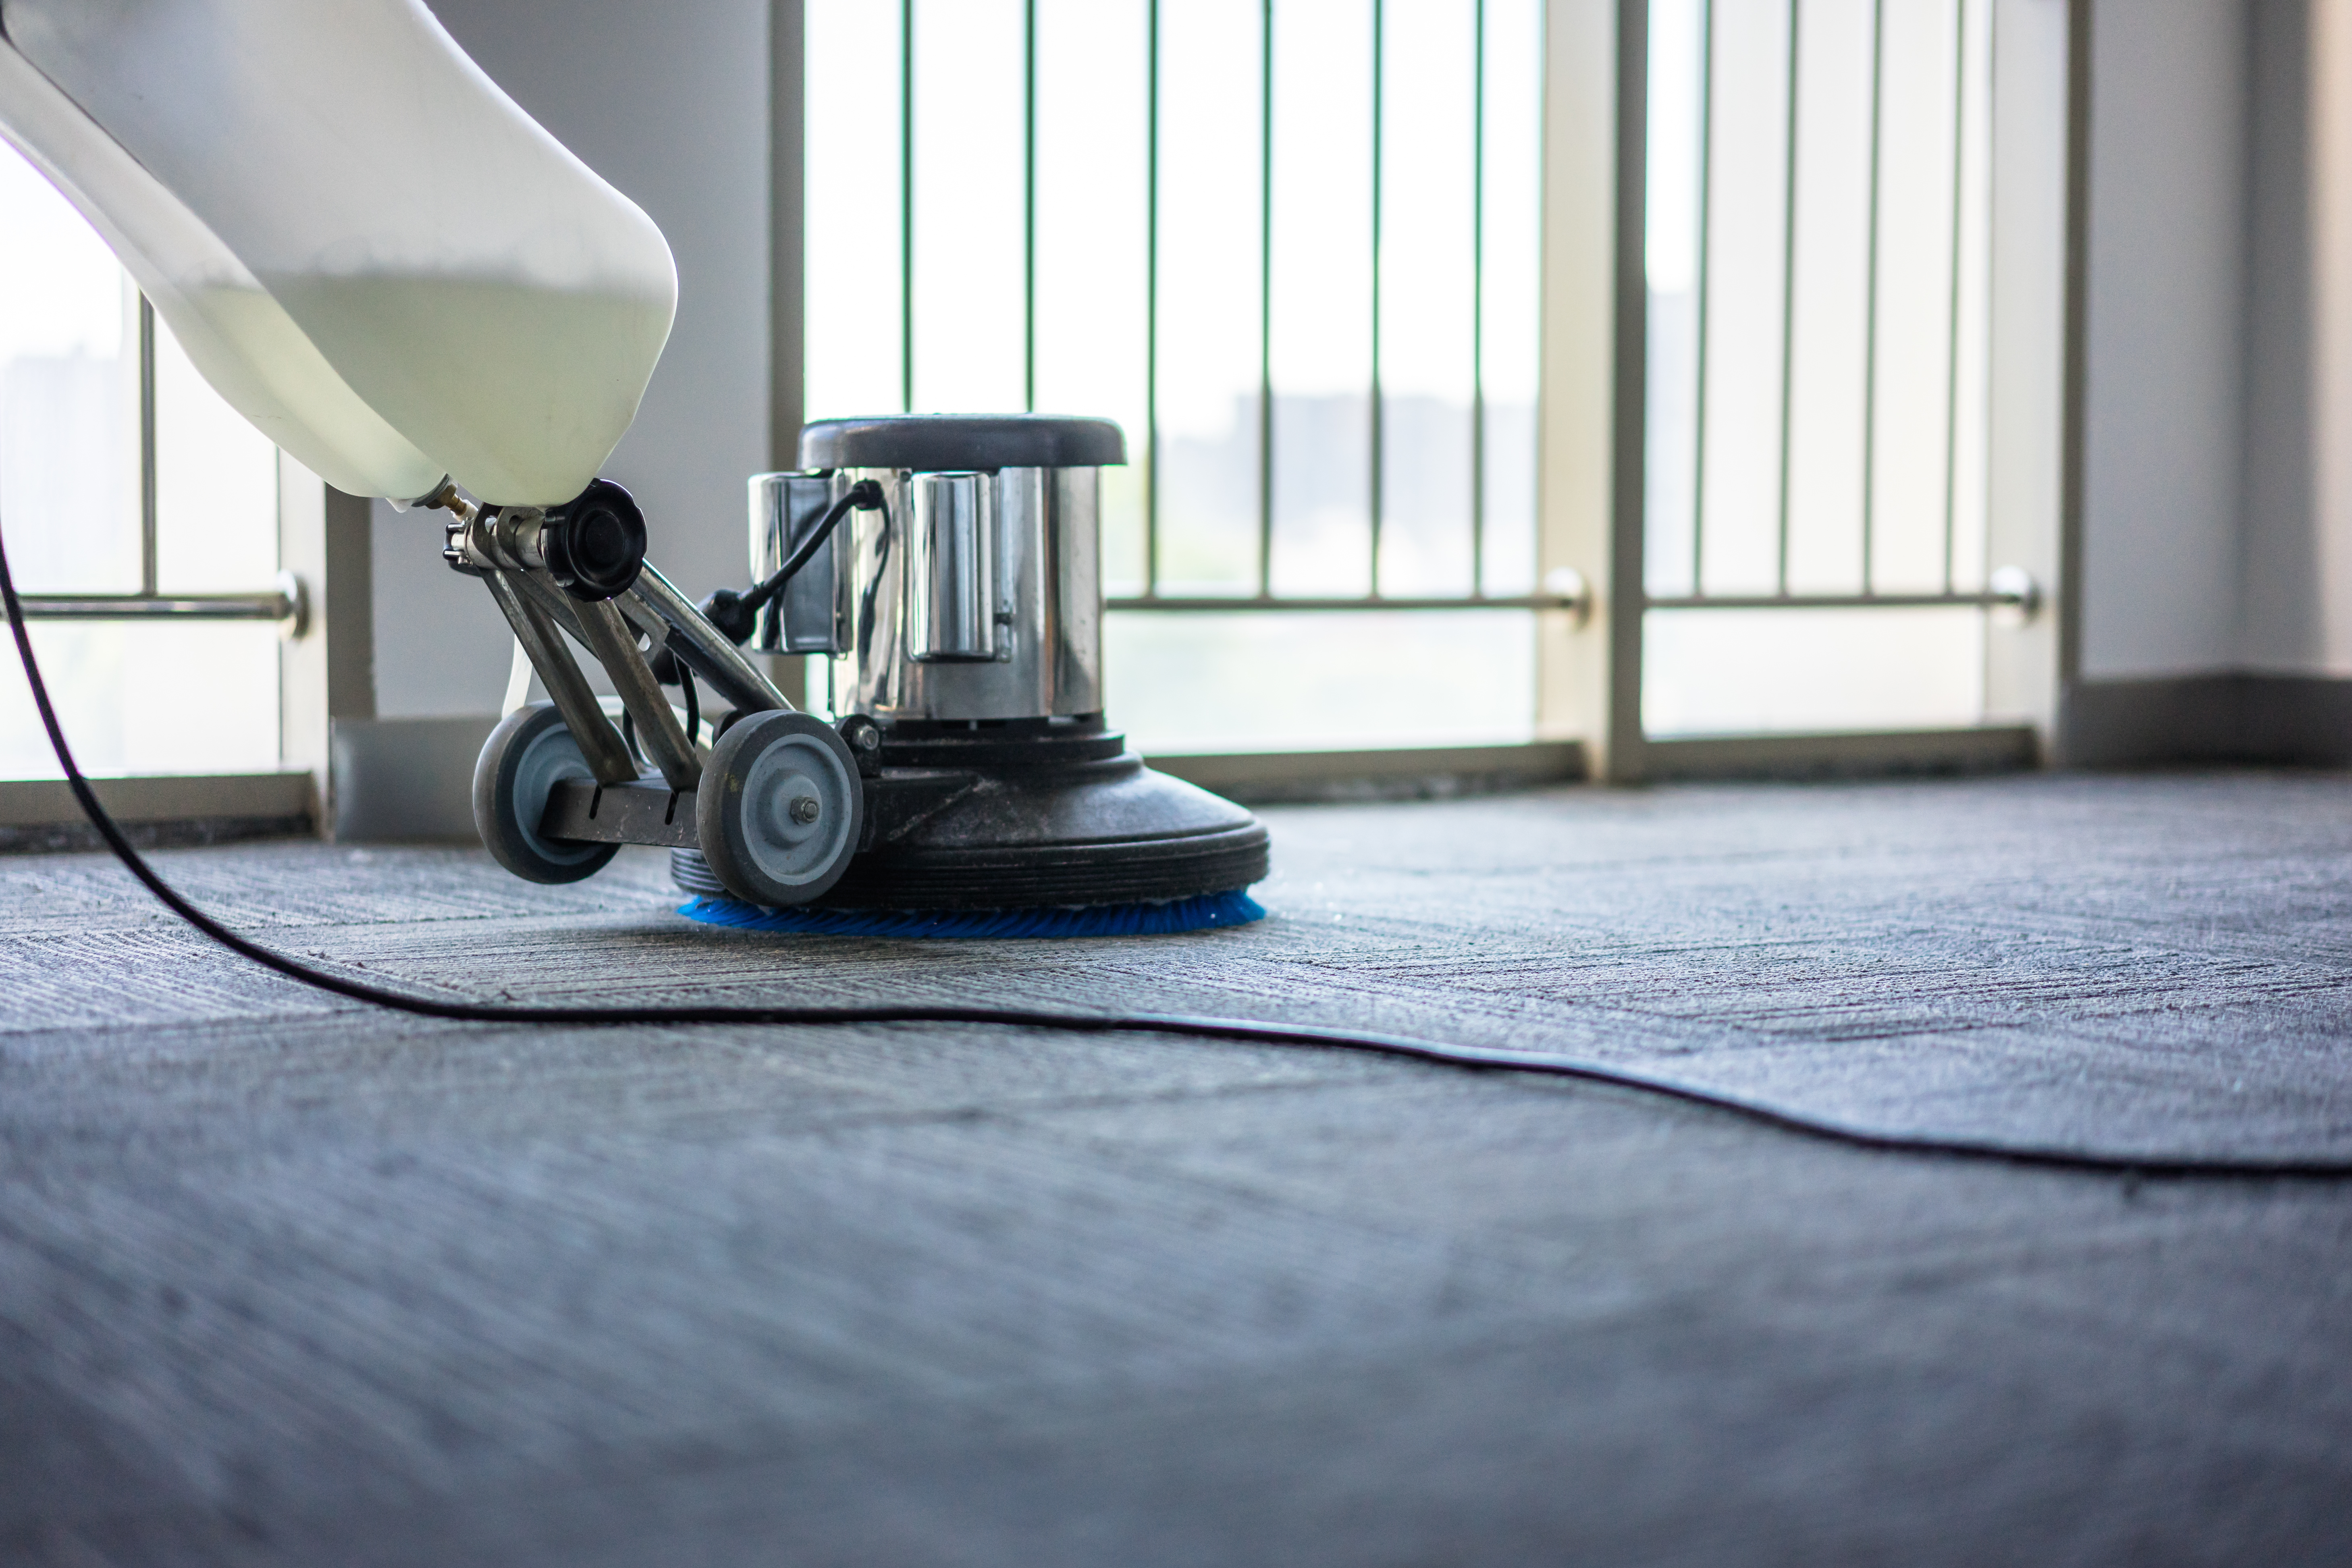 washing floor with machine